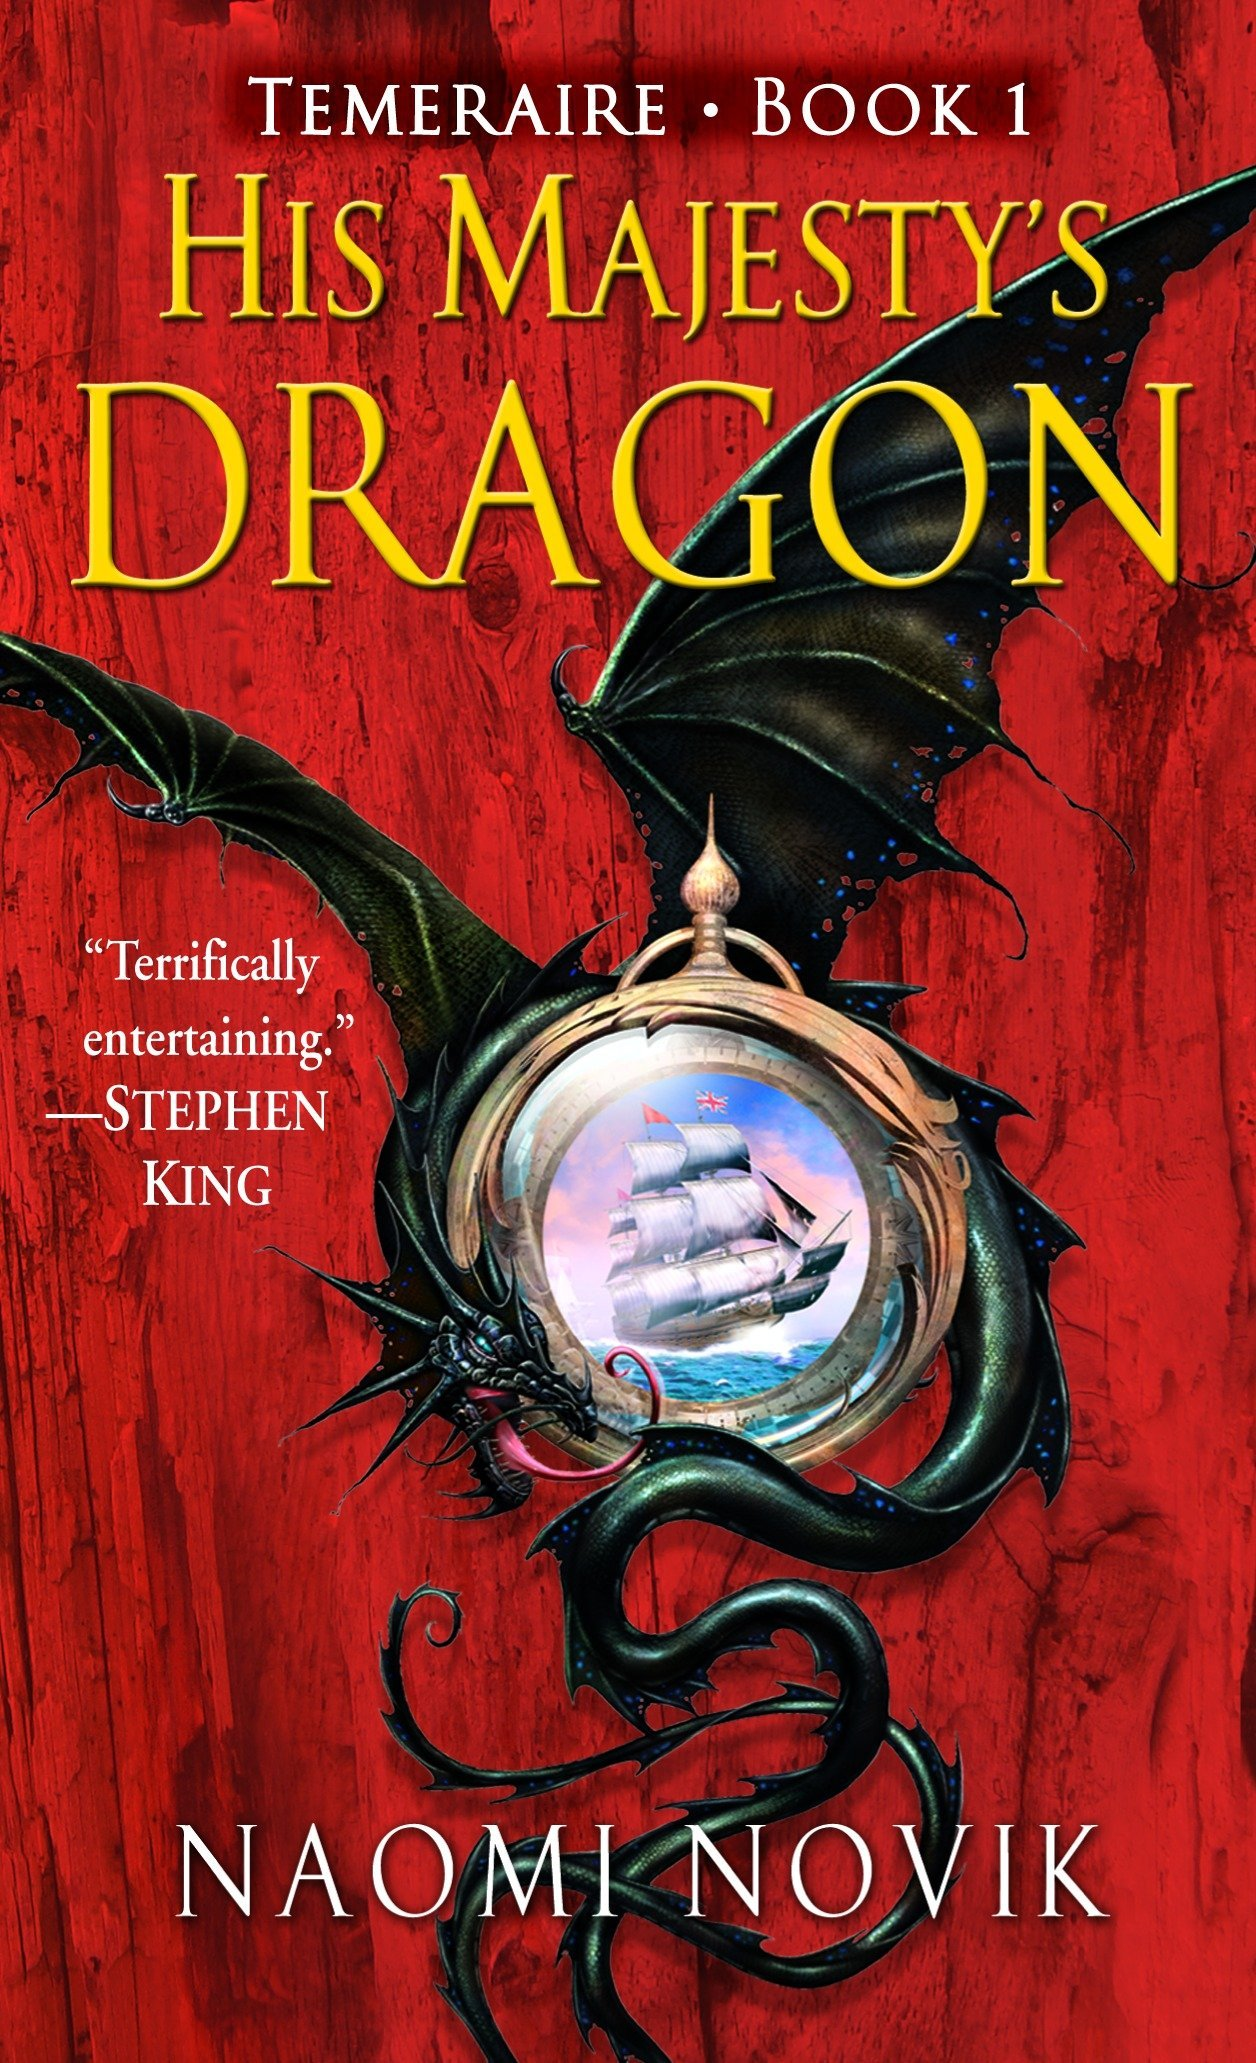 His Majesty's Dragon (Temeraire, Book 1): Novik, Naomi: 9780345481283: Amazon.com: Books